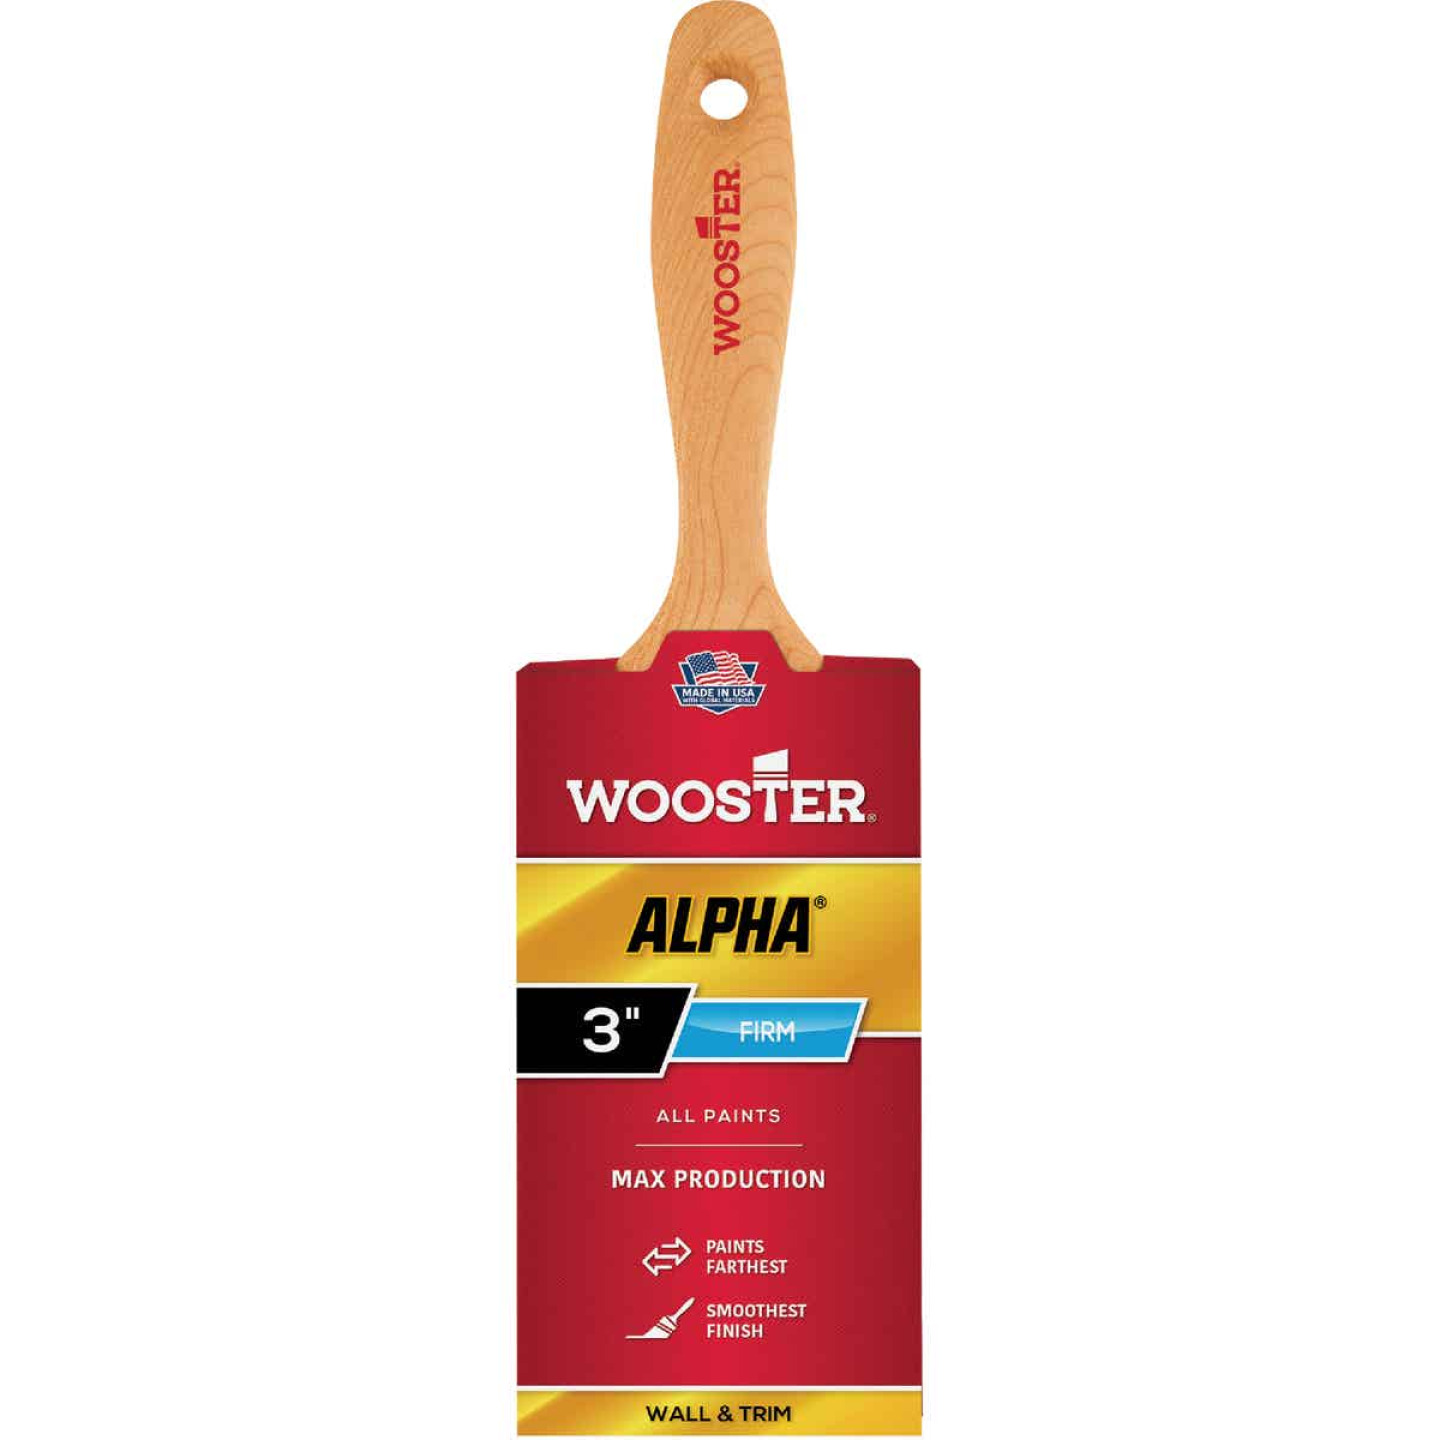 Wooster Alpha 3 In. Firm Flat Varnish Paint Brush Image 1